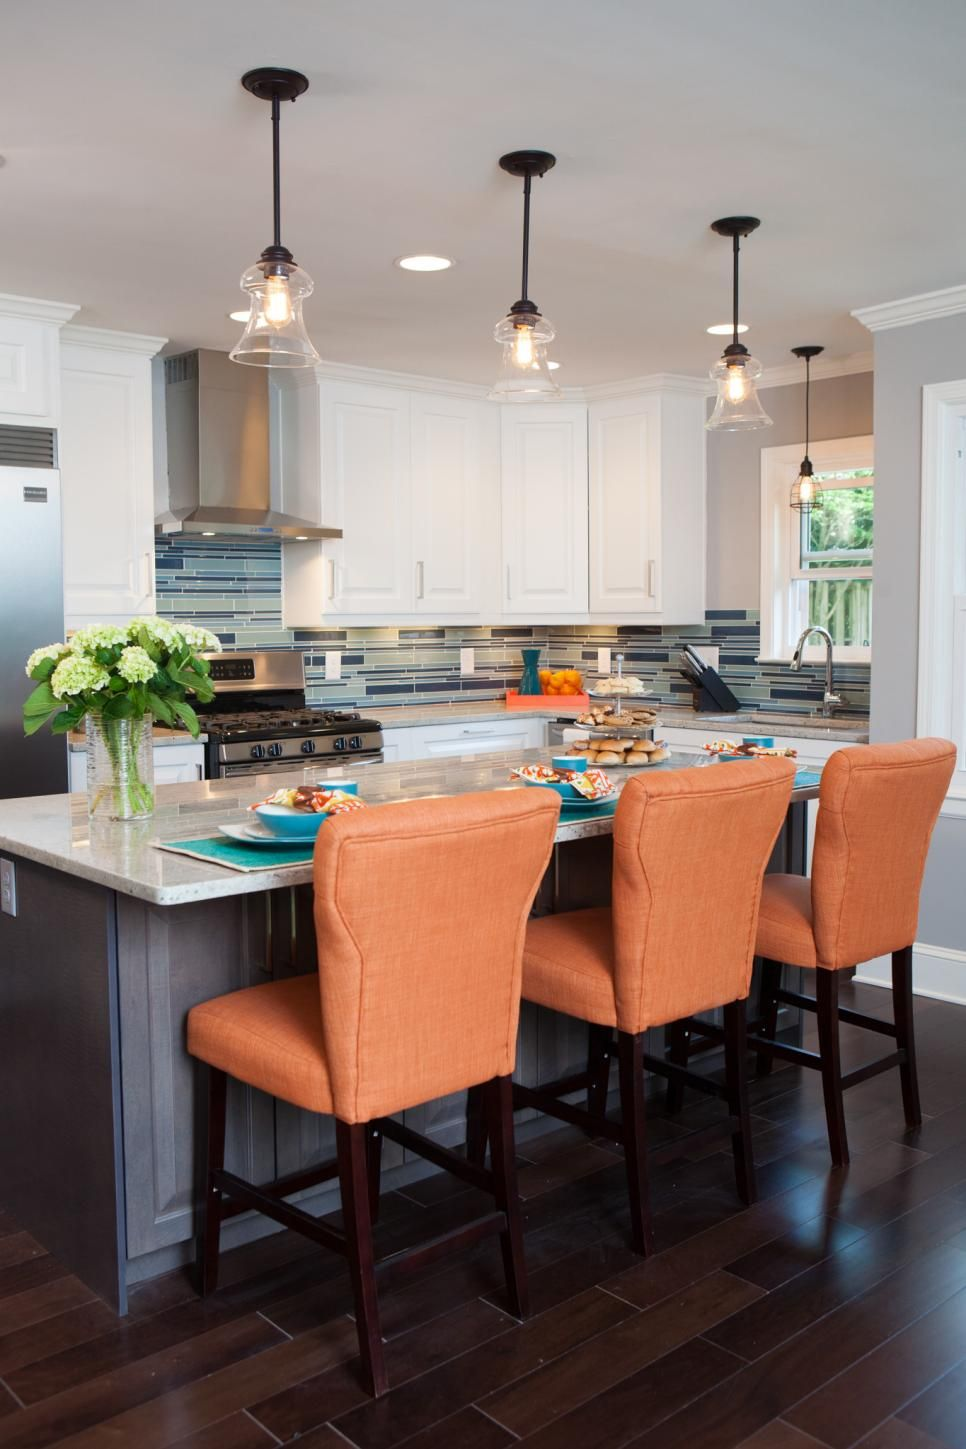 Real Wood Kitchen Cabinets Costco Sink Garbage Disposal 32 Design Tips We Learned From The Property Brothers ...